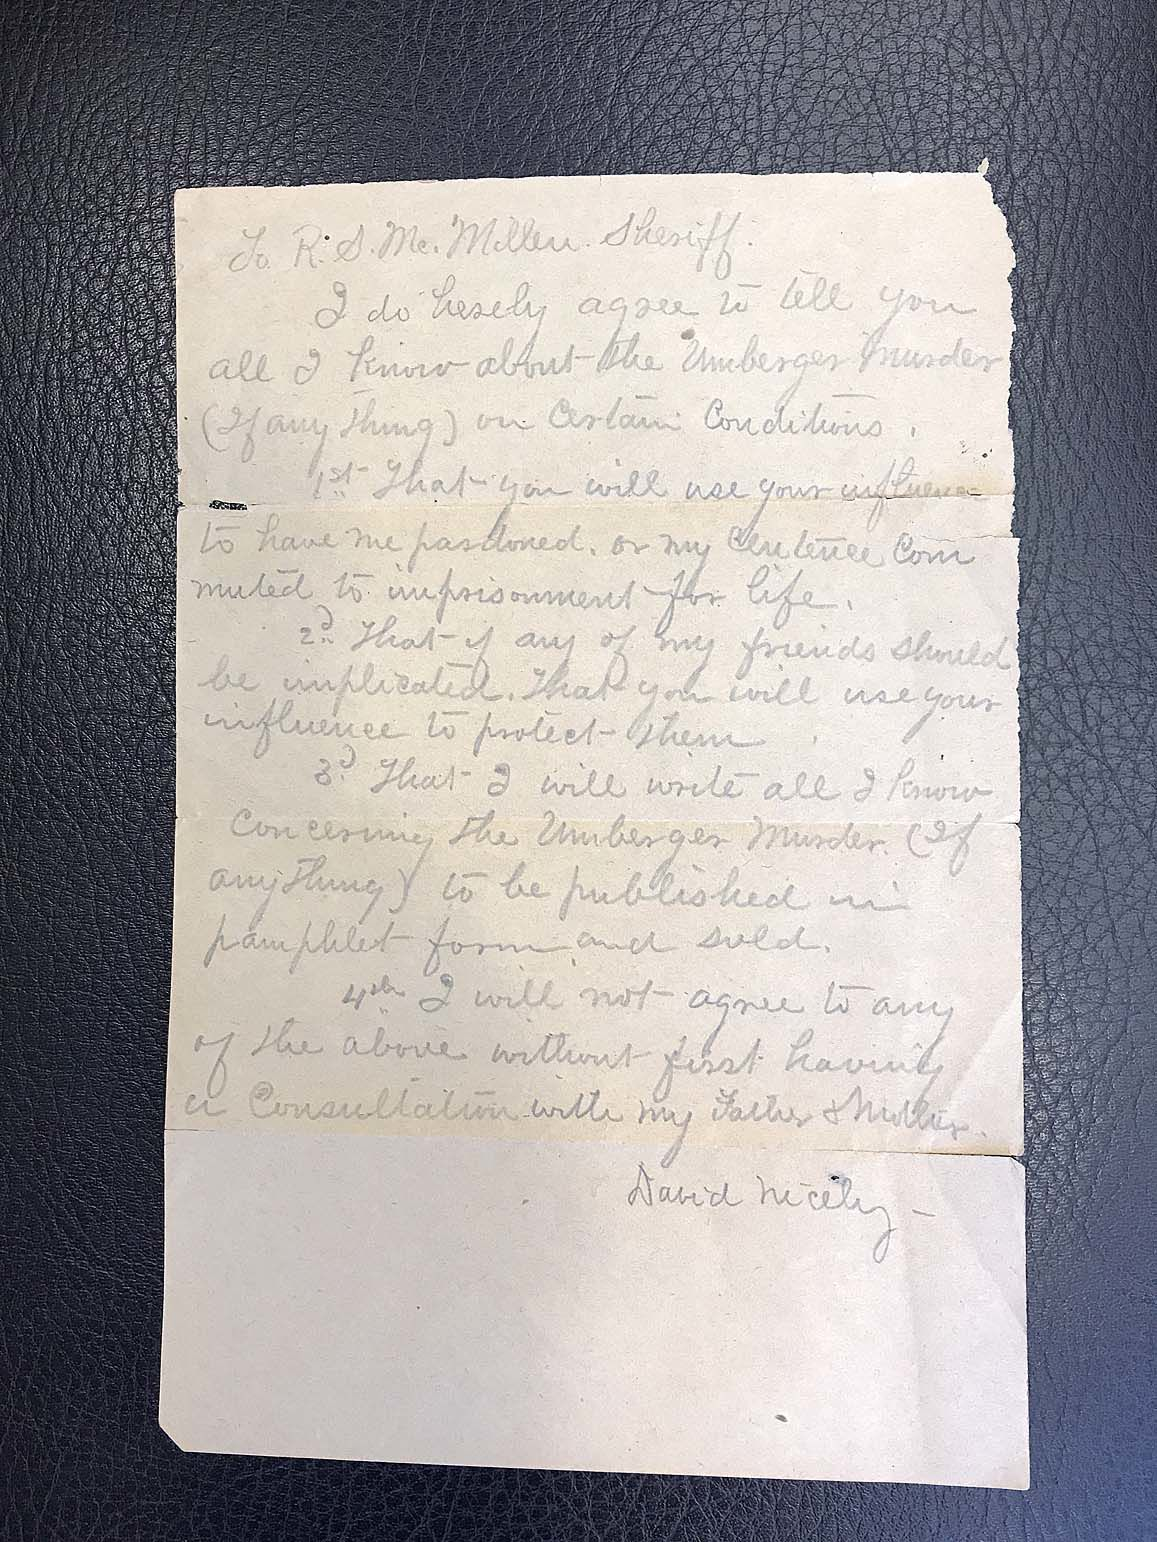 19th-century killer's letter found, donated to Somerset